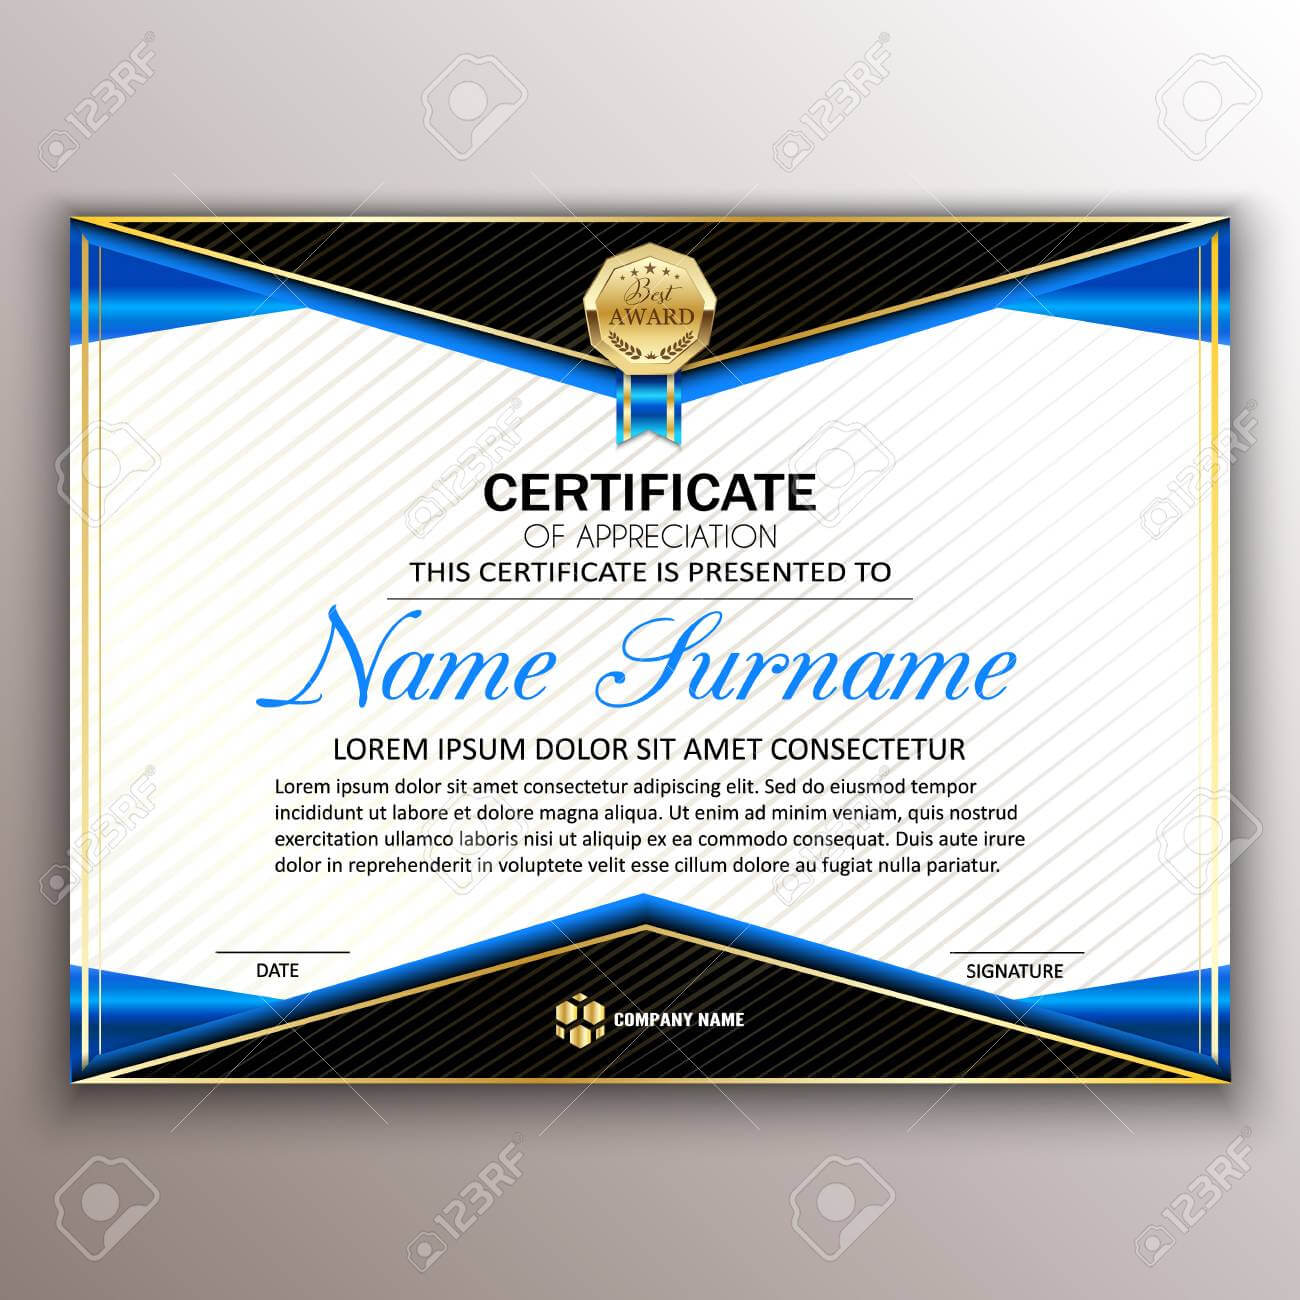 Beautiful Certificate Template Design With Best Award Symbol.. Inside Beautiful Certificate Templates